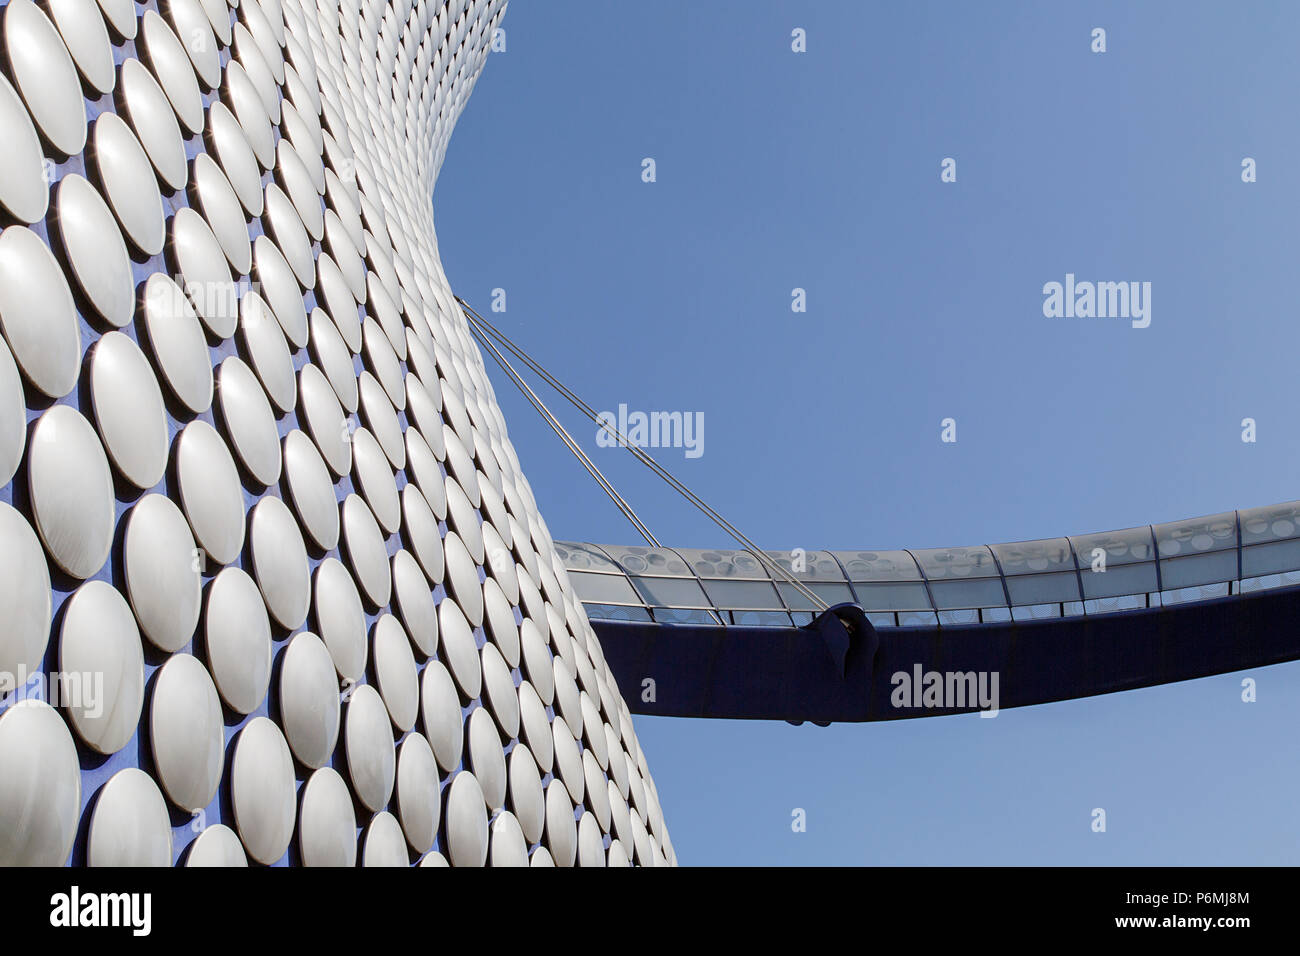 Birmingham, UK: June 29, 2018: Selfridges is one of Birmingham city's most distinctive and iconic landmarks and part of the Bullring Shopping Centre - Stock Image